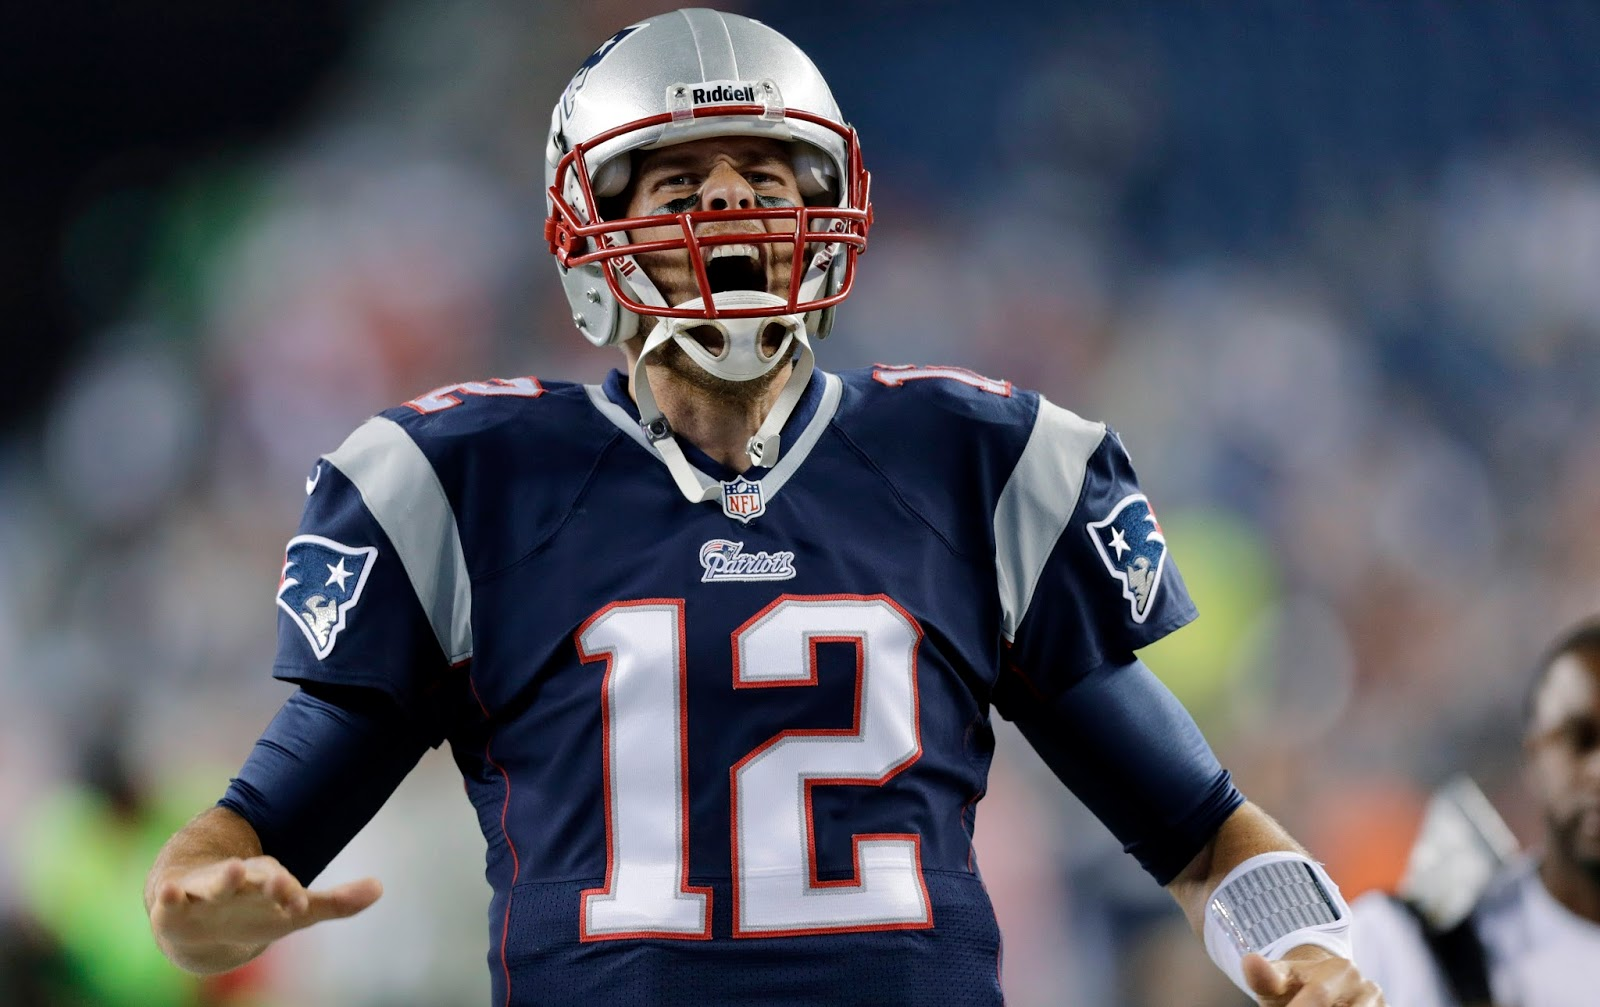 New England Patriots Tom Brady Is Angry Frustrated And Mad At The Starter Wire Diagram 2010 Seagrave Fire Apparatus Poor It So Hard Being Him